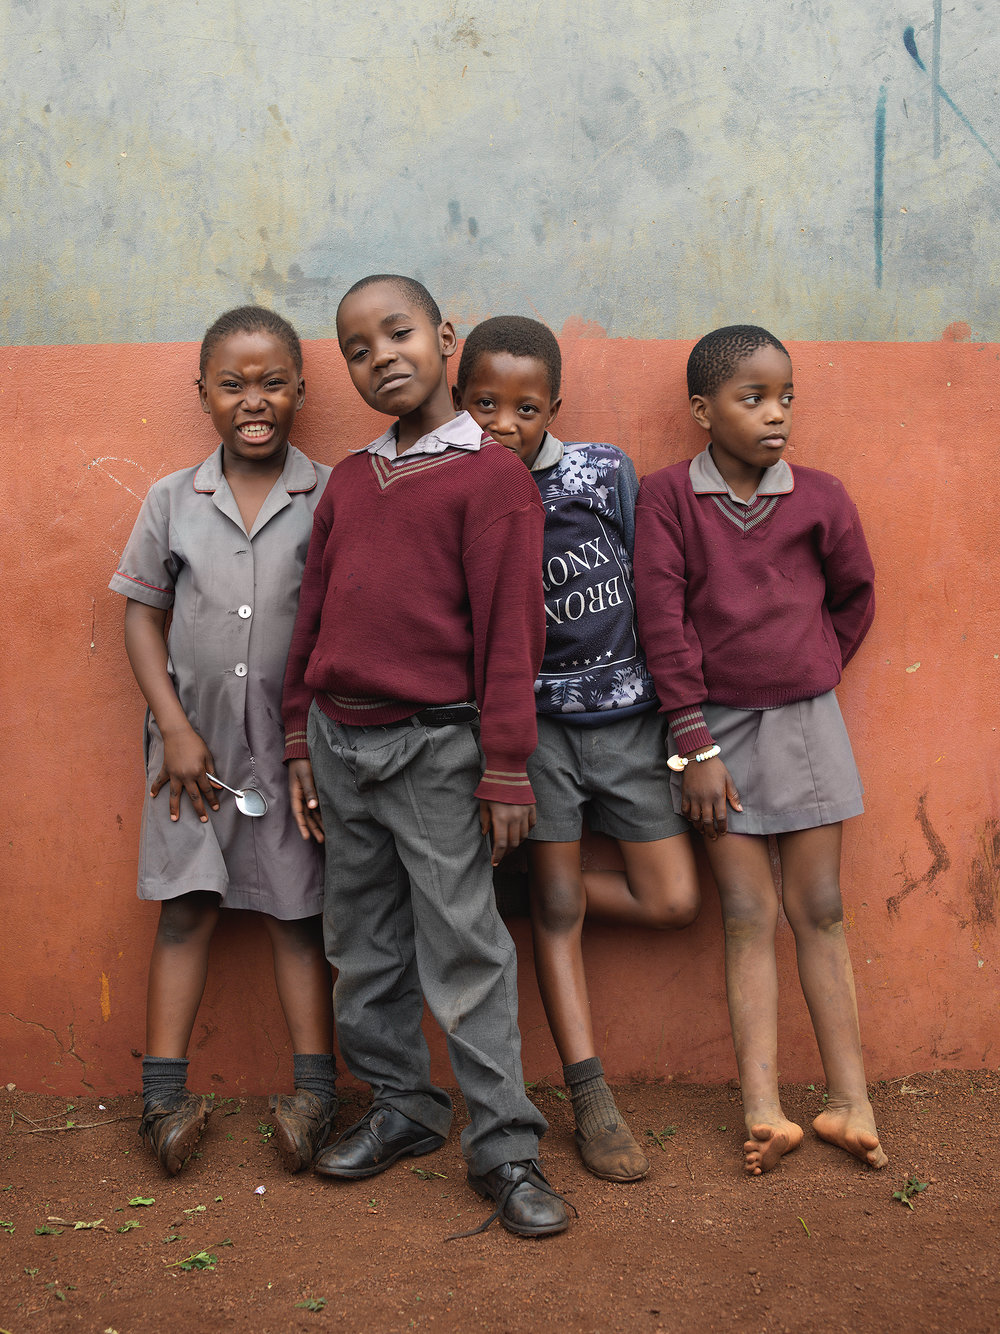 Portrait series for Star for Life, an organization fostering success in South Africa students.